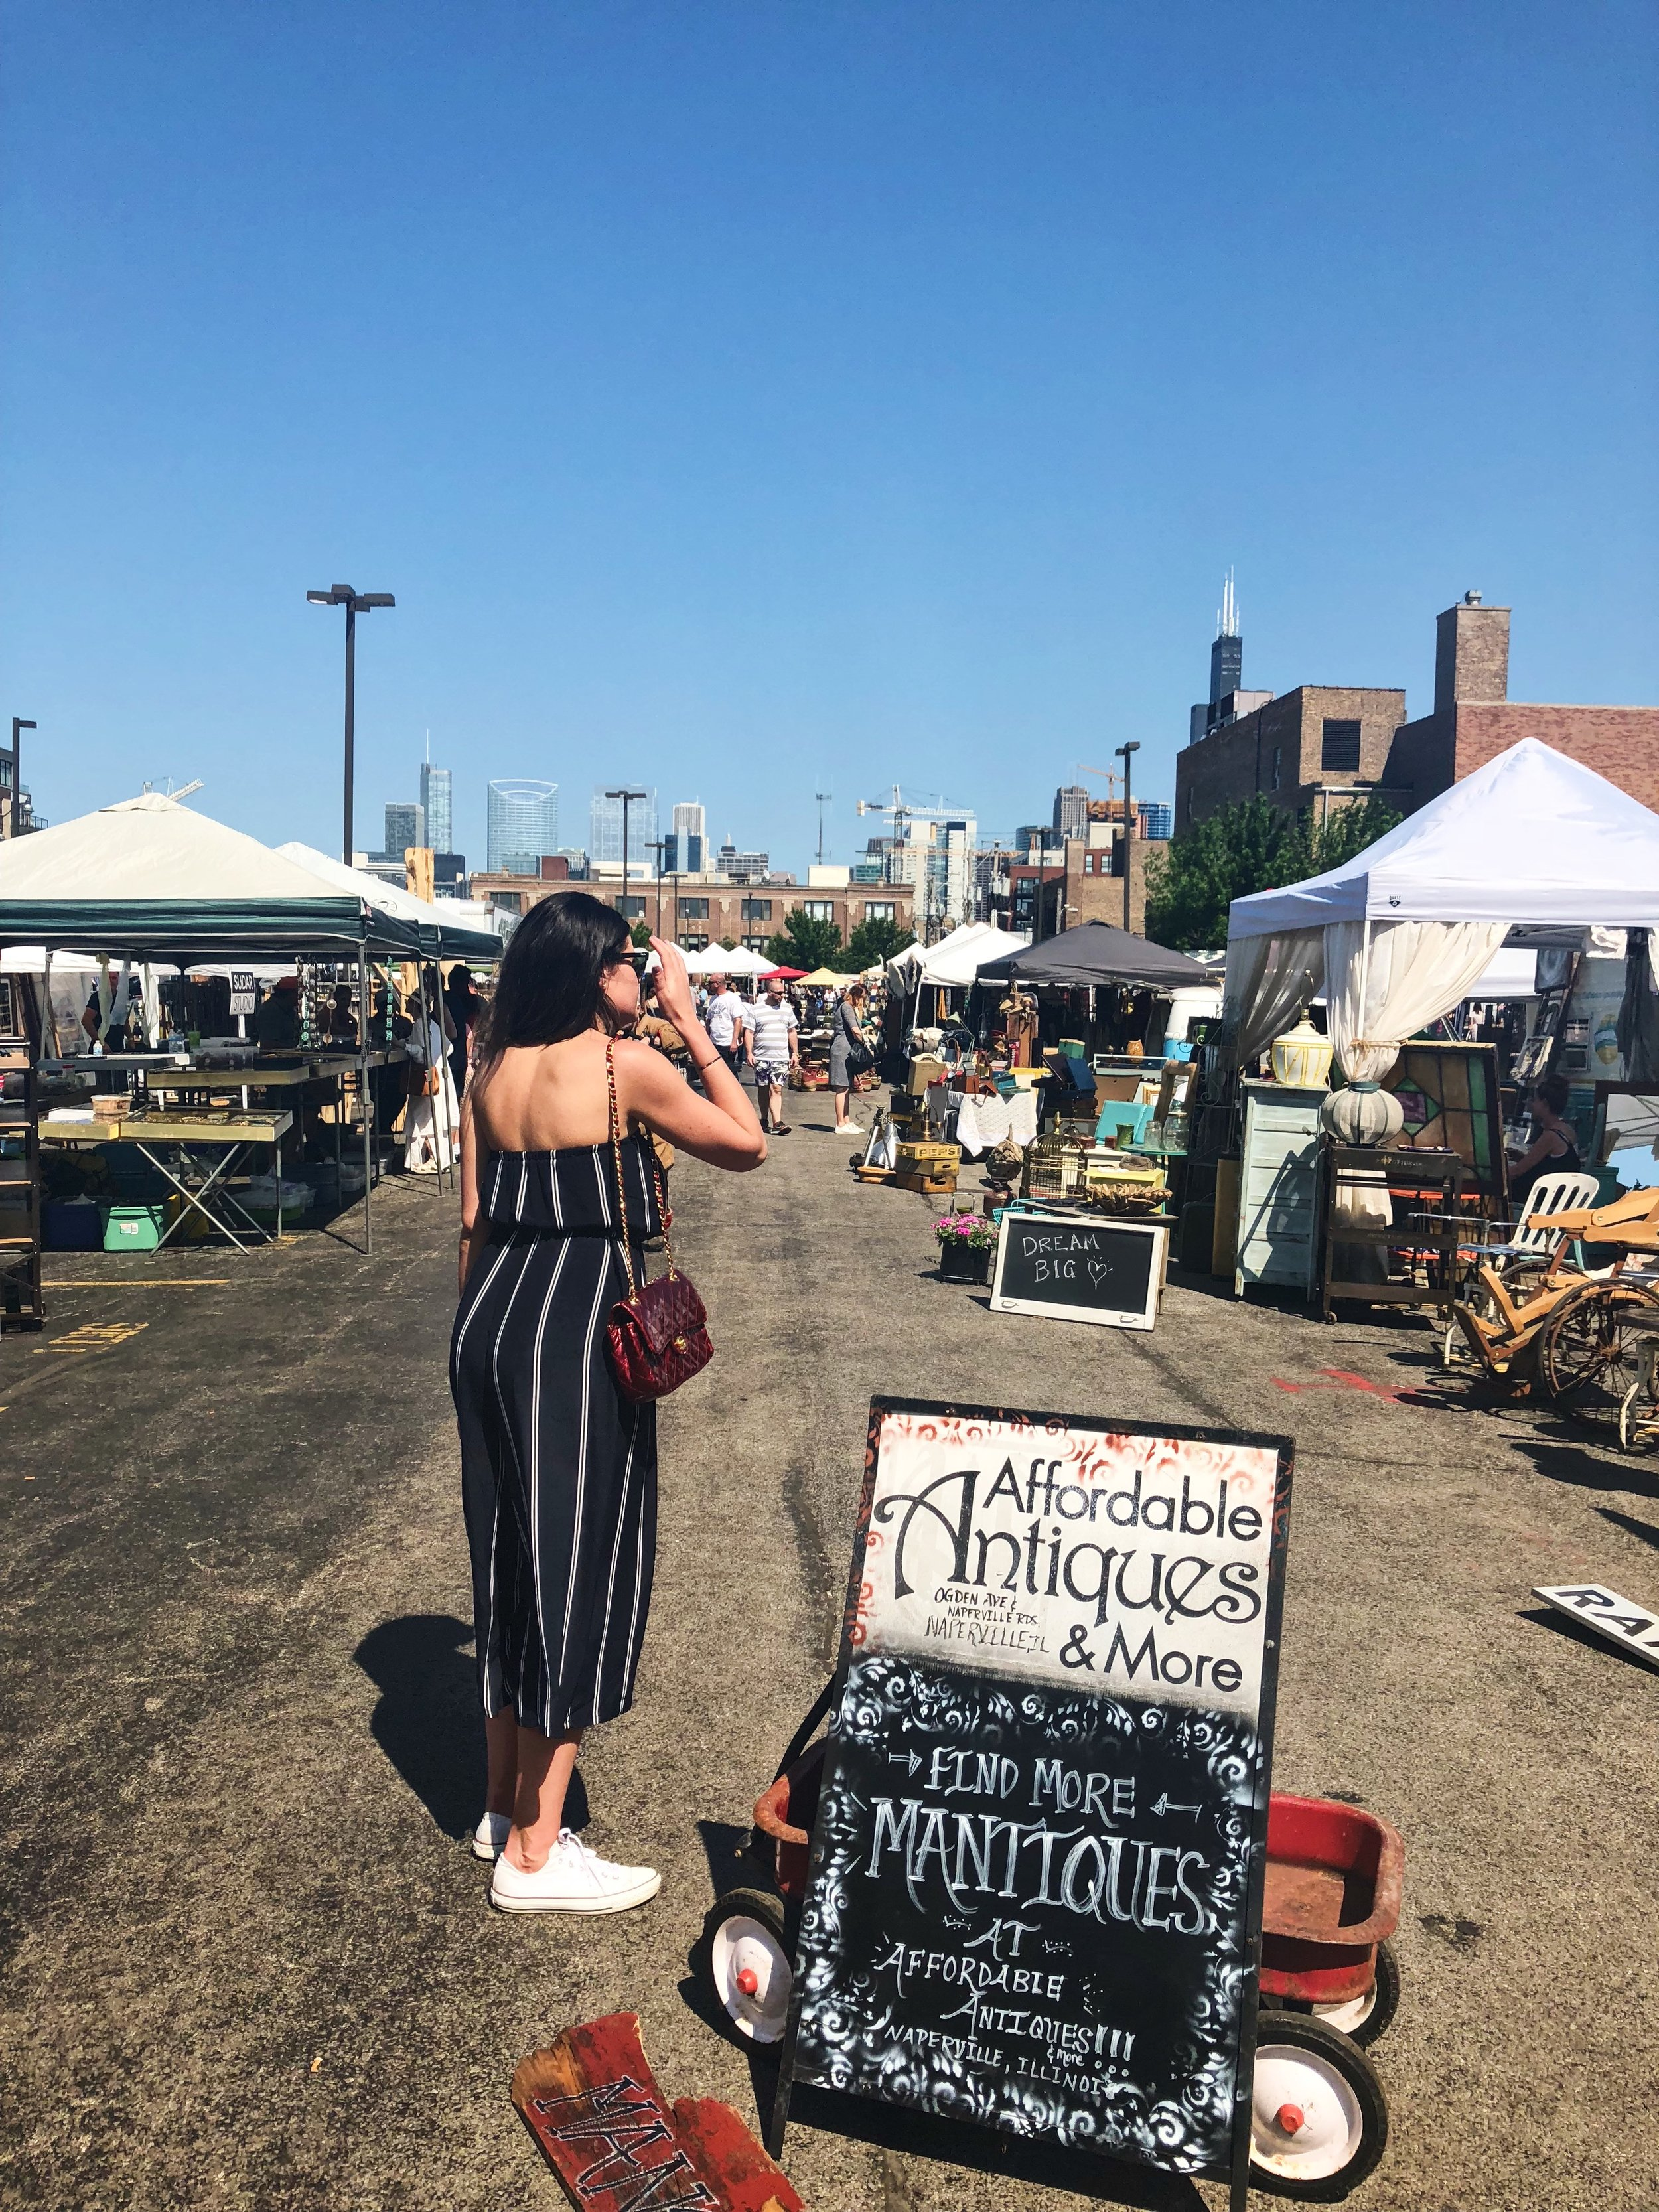 randolph street market - JUNE 23+24, JUL 28+29, AUG 25+26, SEPT 29+30, 2018 - randolph street market festival continues the outdoor+indoor summer season! from may-september experience 300 vendors with the best of unique #vintage, #antique & repurposed #furniture, art, decor, ephemera, vintage fashion (like amazing chanel bags!) for men/women, fancy food, & global goods - xoxjackieCLICK HERE FOR TICKETS